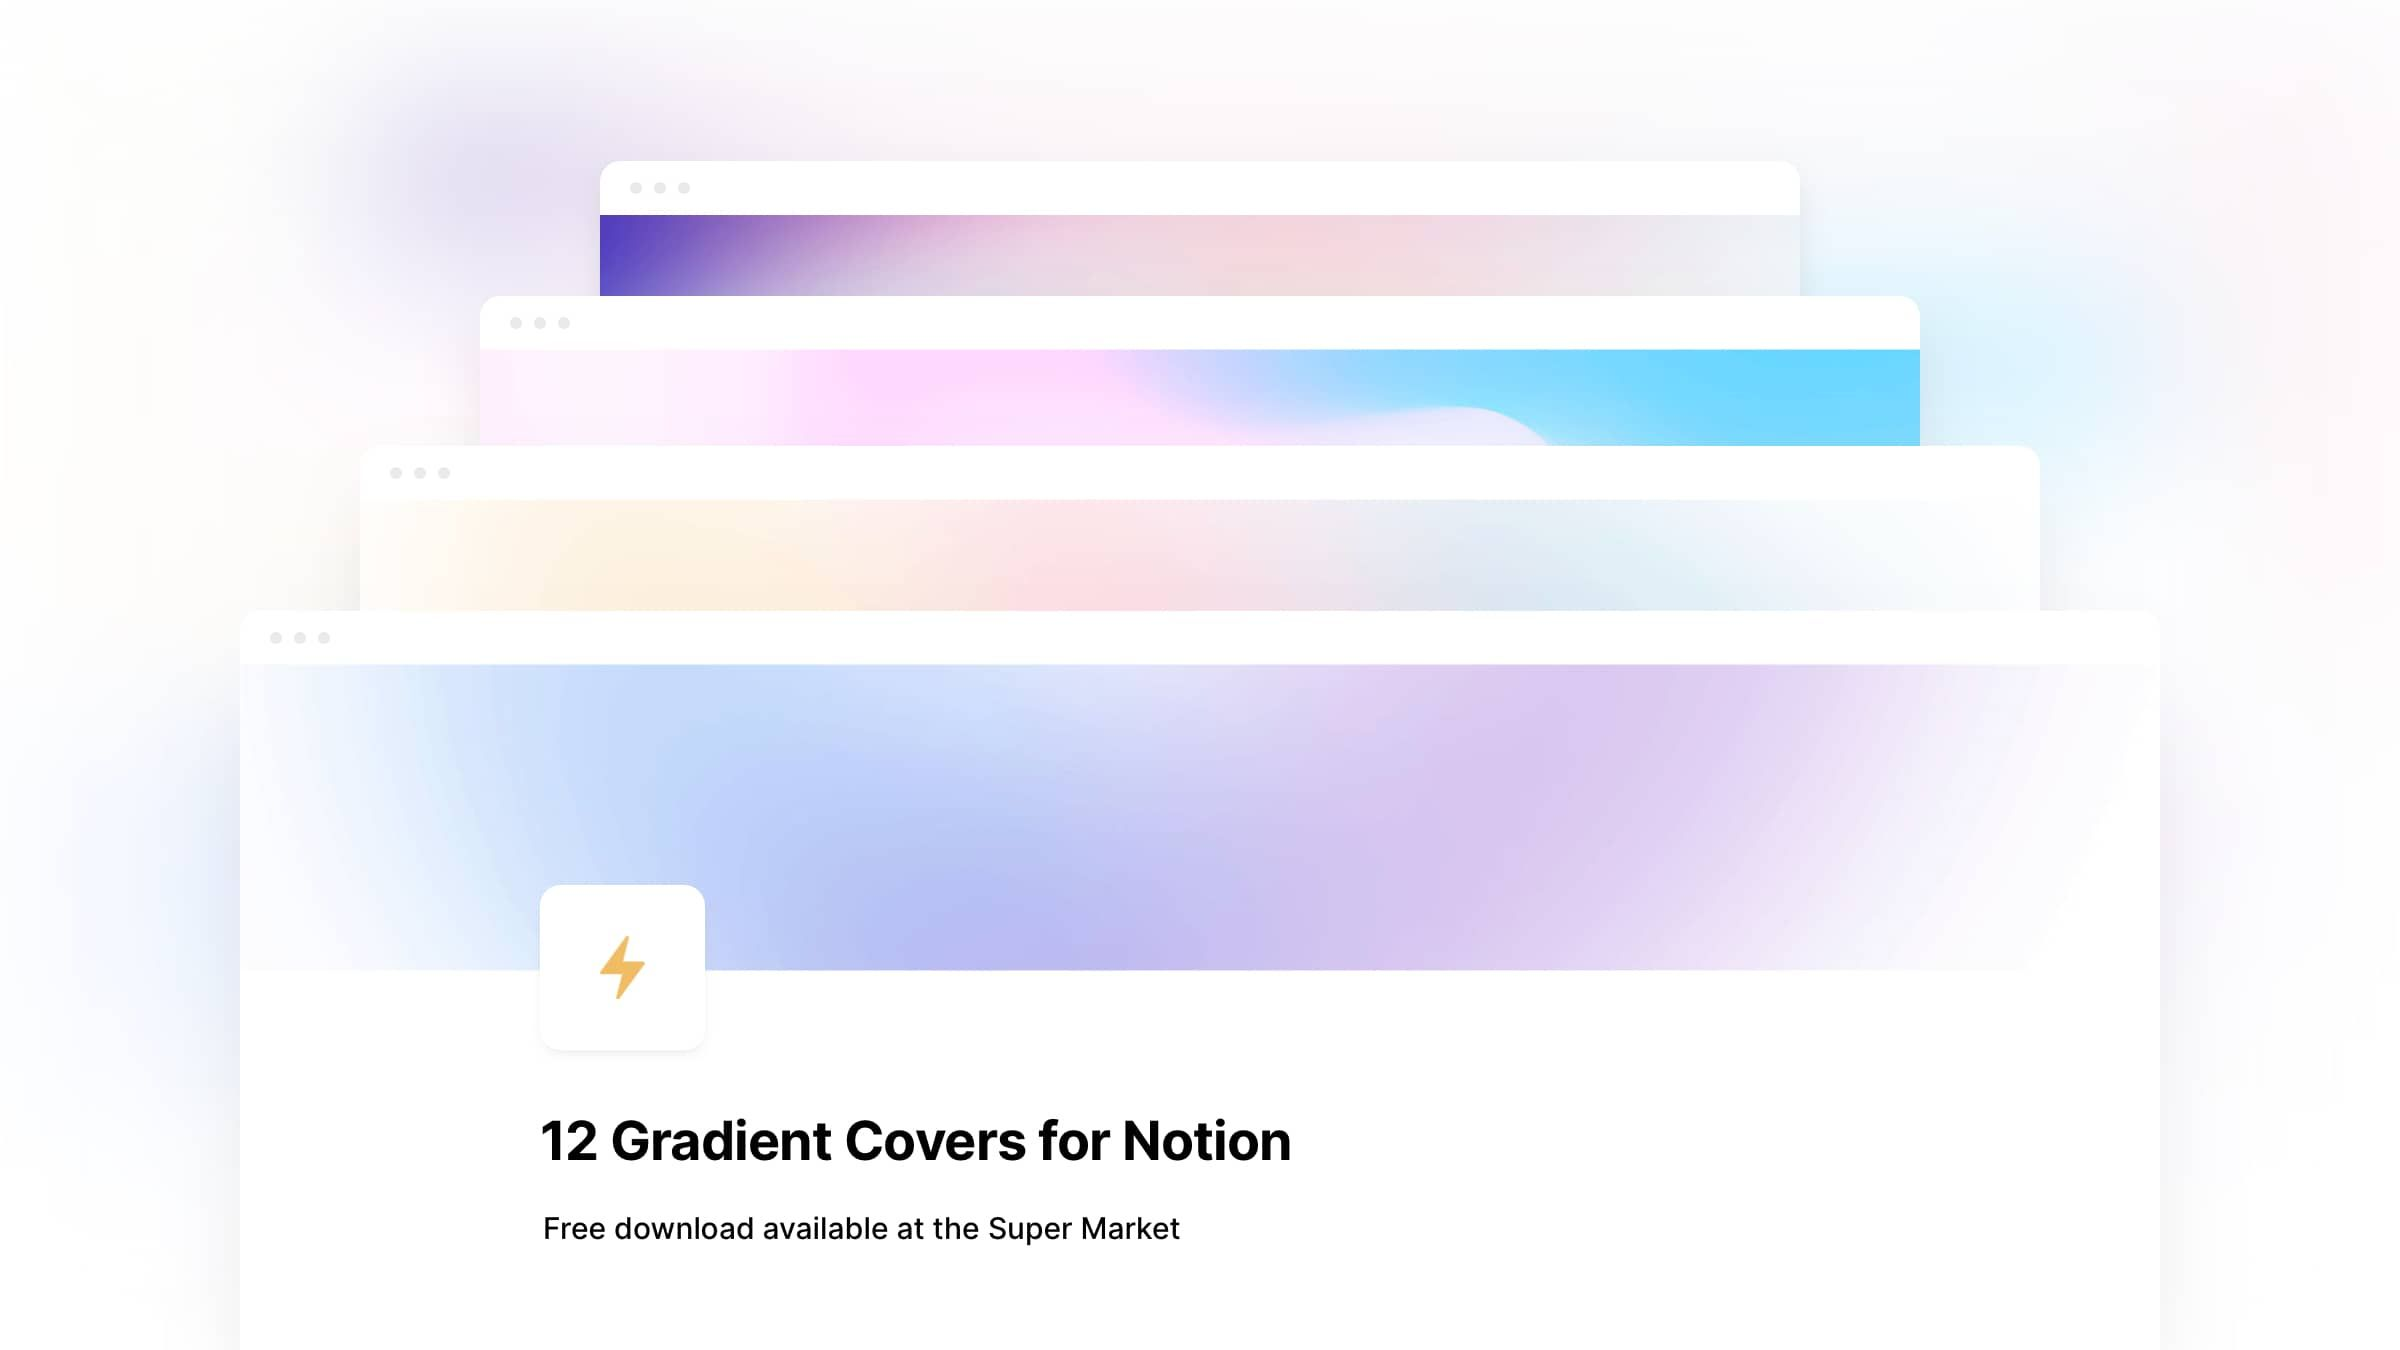 12 Gradient Covers for Notion